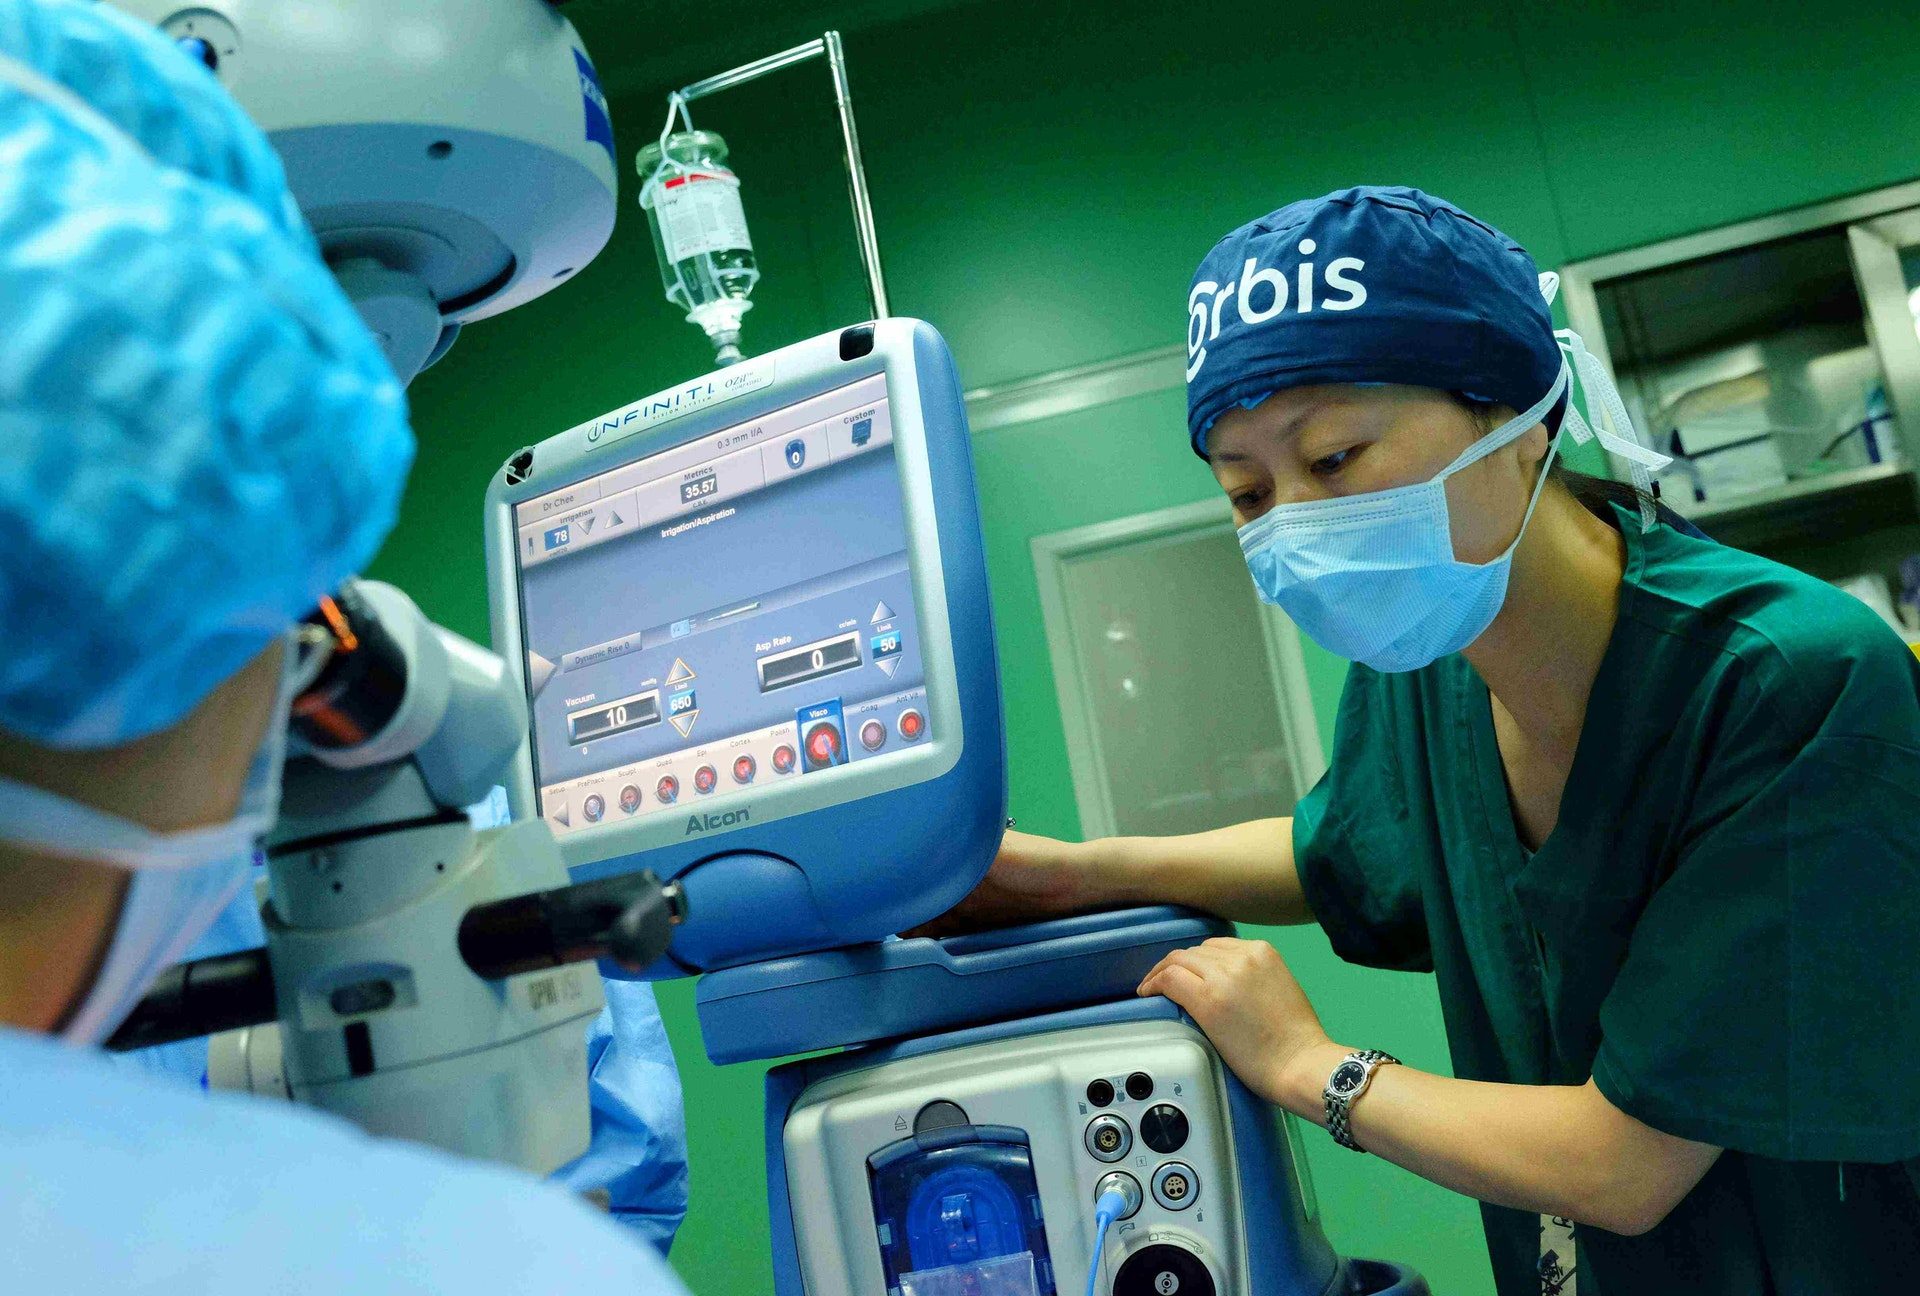 Xiao Ying, staff nurse in the operating room at Shandong Red Cross Eye Hospital adjusts irrigation levels on the Alcon Infiniti machine during a cataract extraction procedure.